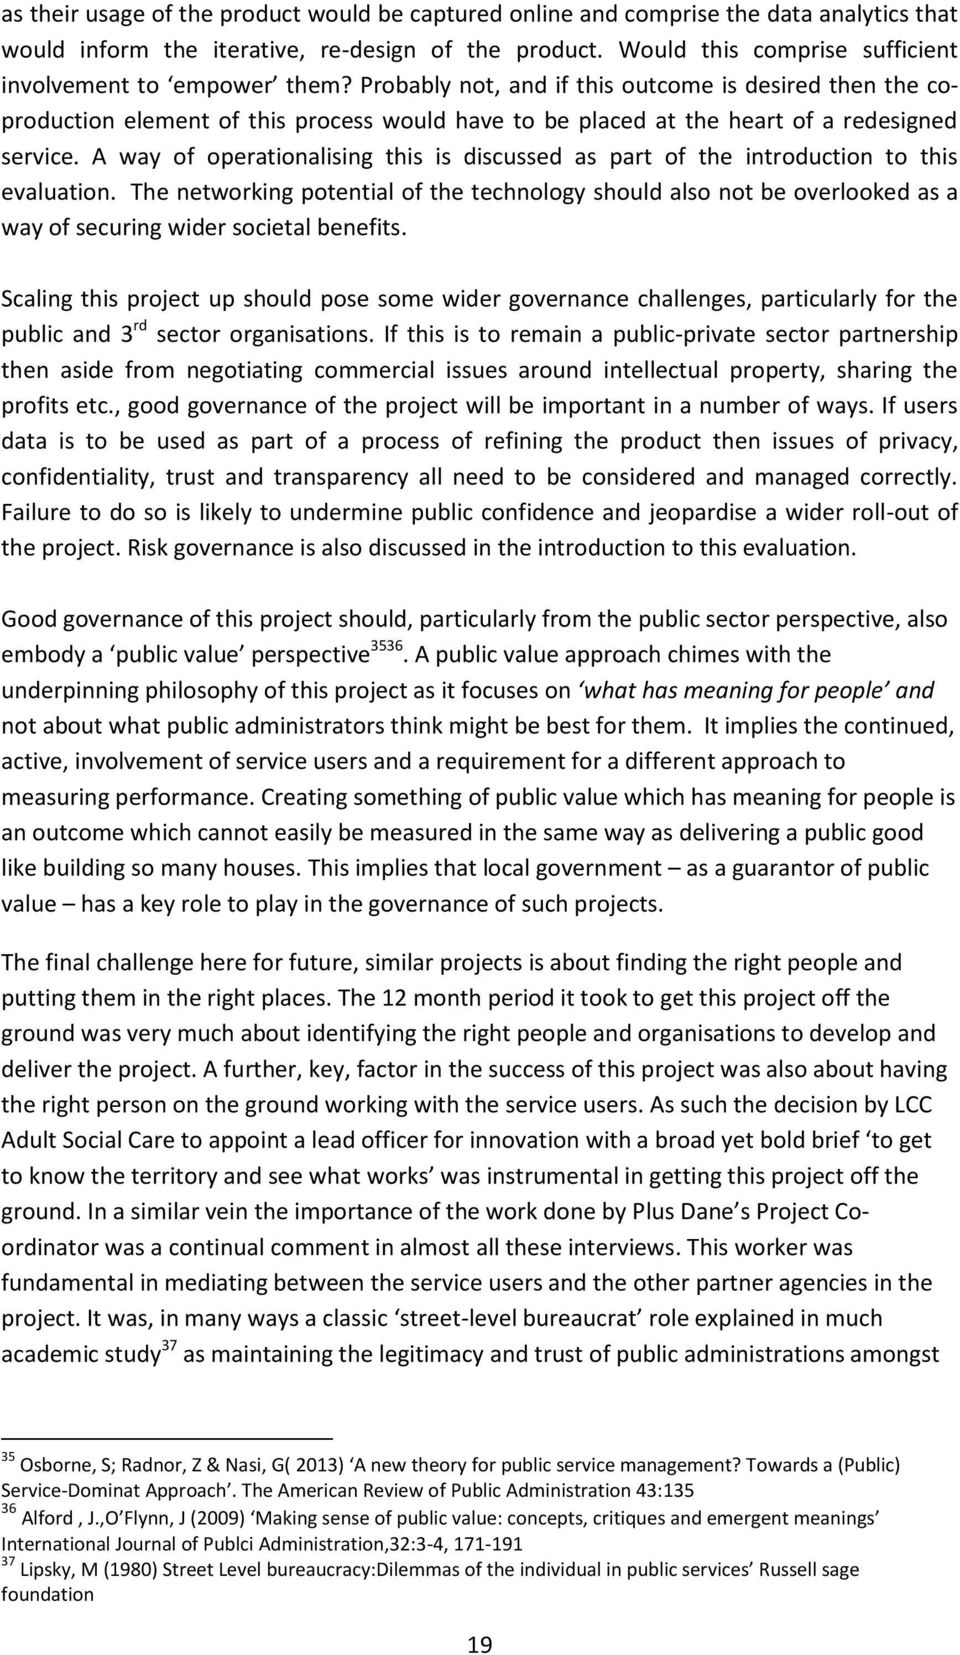 munro review lipsky s notion of street level bureaucracy Street-level bureaucracy: dilemmas of the individual in public services, written by michael lipsky in 1980, is an analysis of street-level bureaucracies which describes the process whereby lower ranking employees of human service agencies utilize some level.